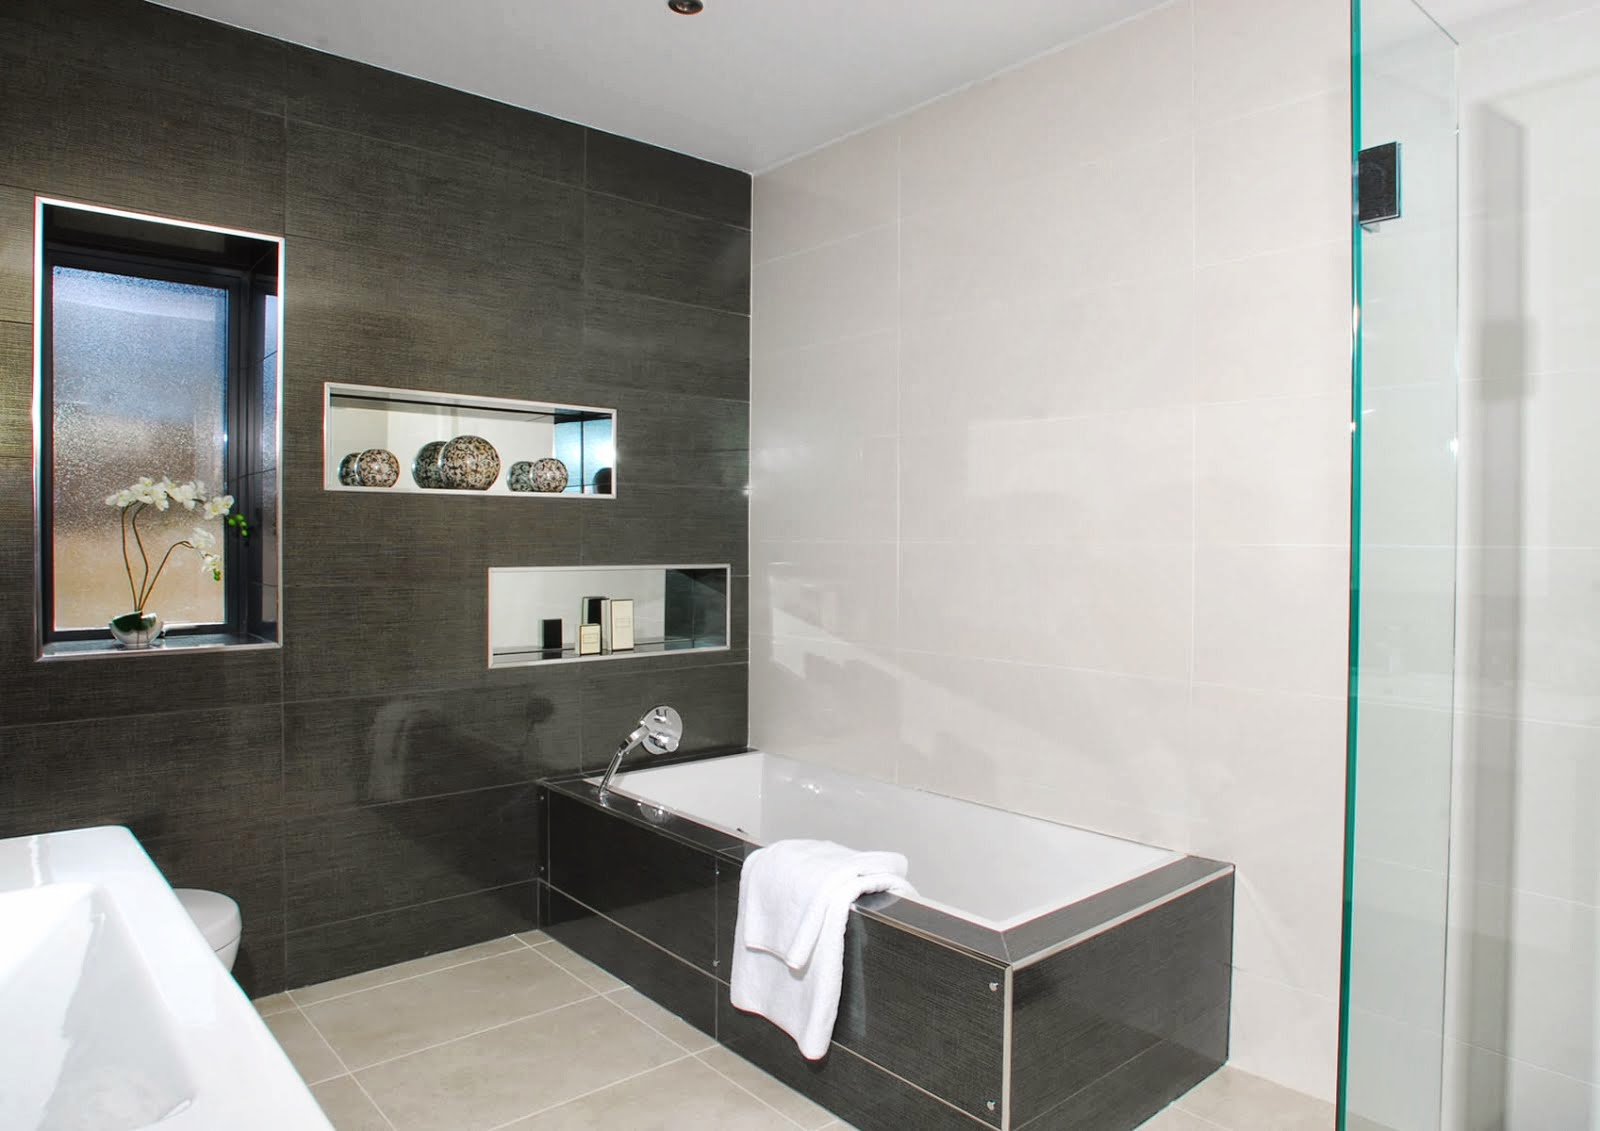 bathroom tiling ideas uk bathroom tiles ideas uk with brilliant inspiration in us 16900